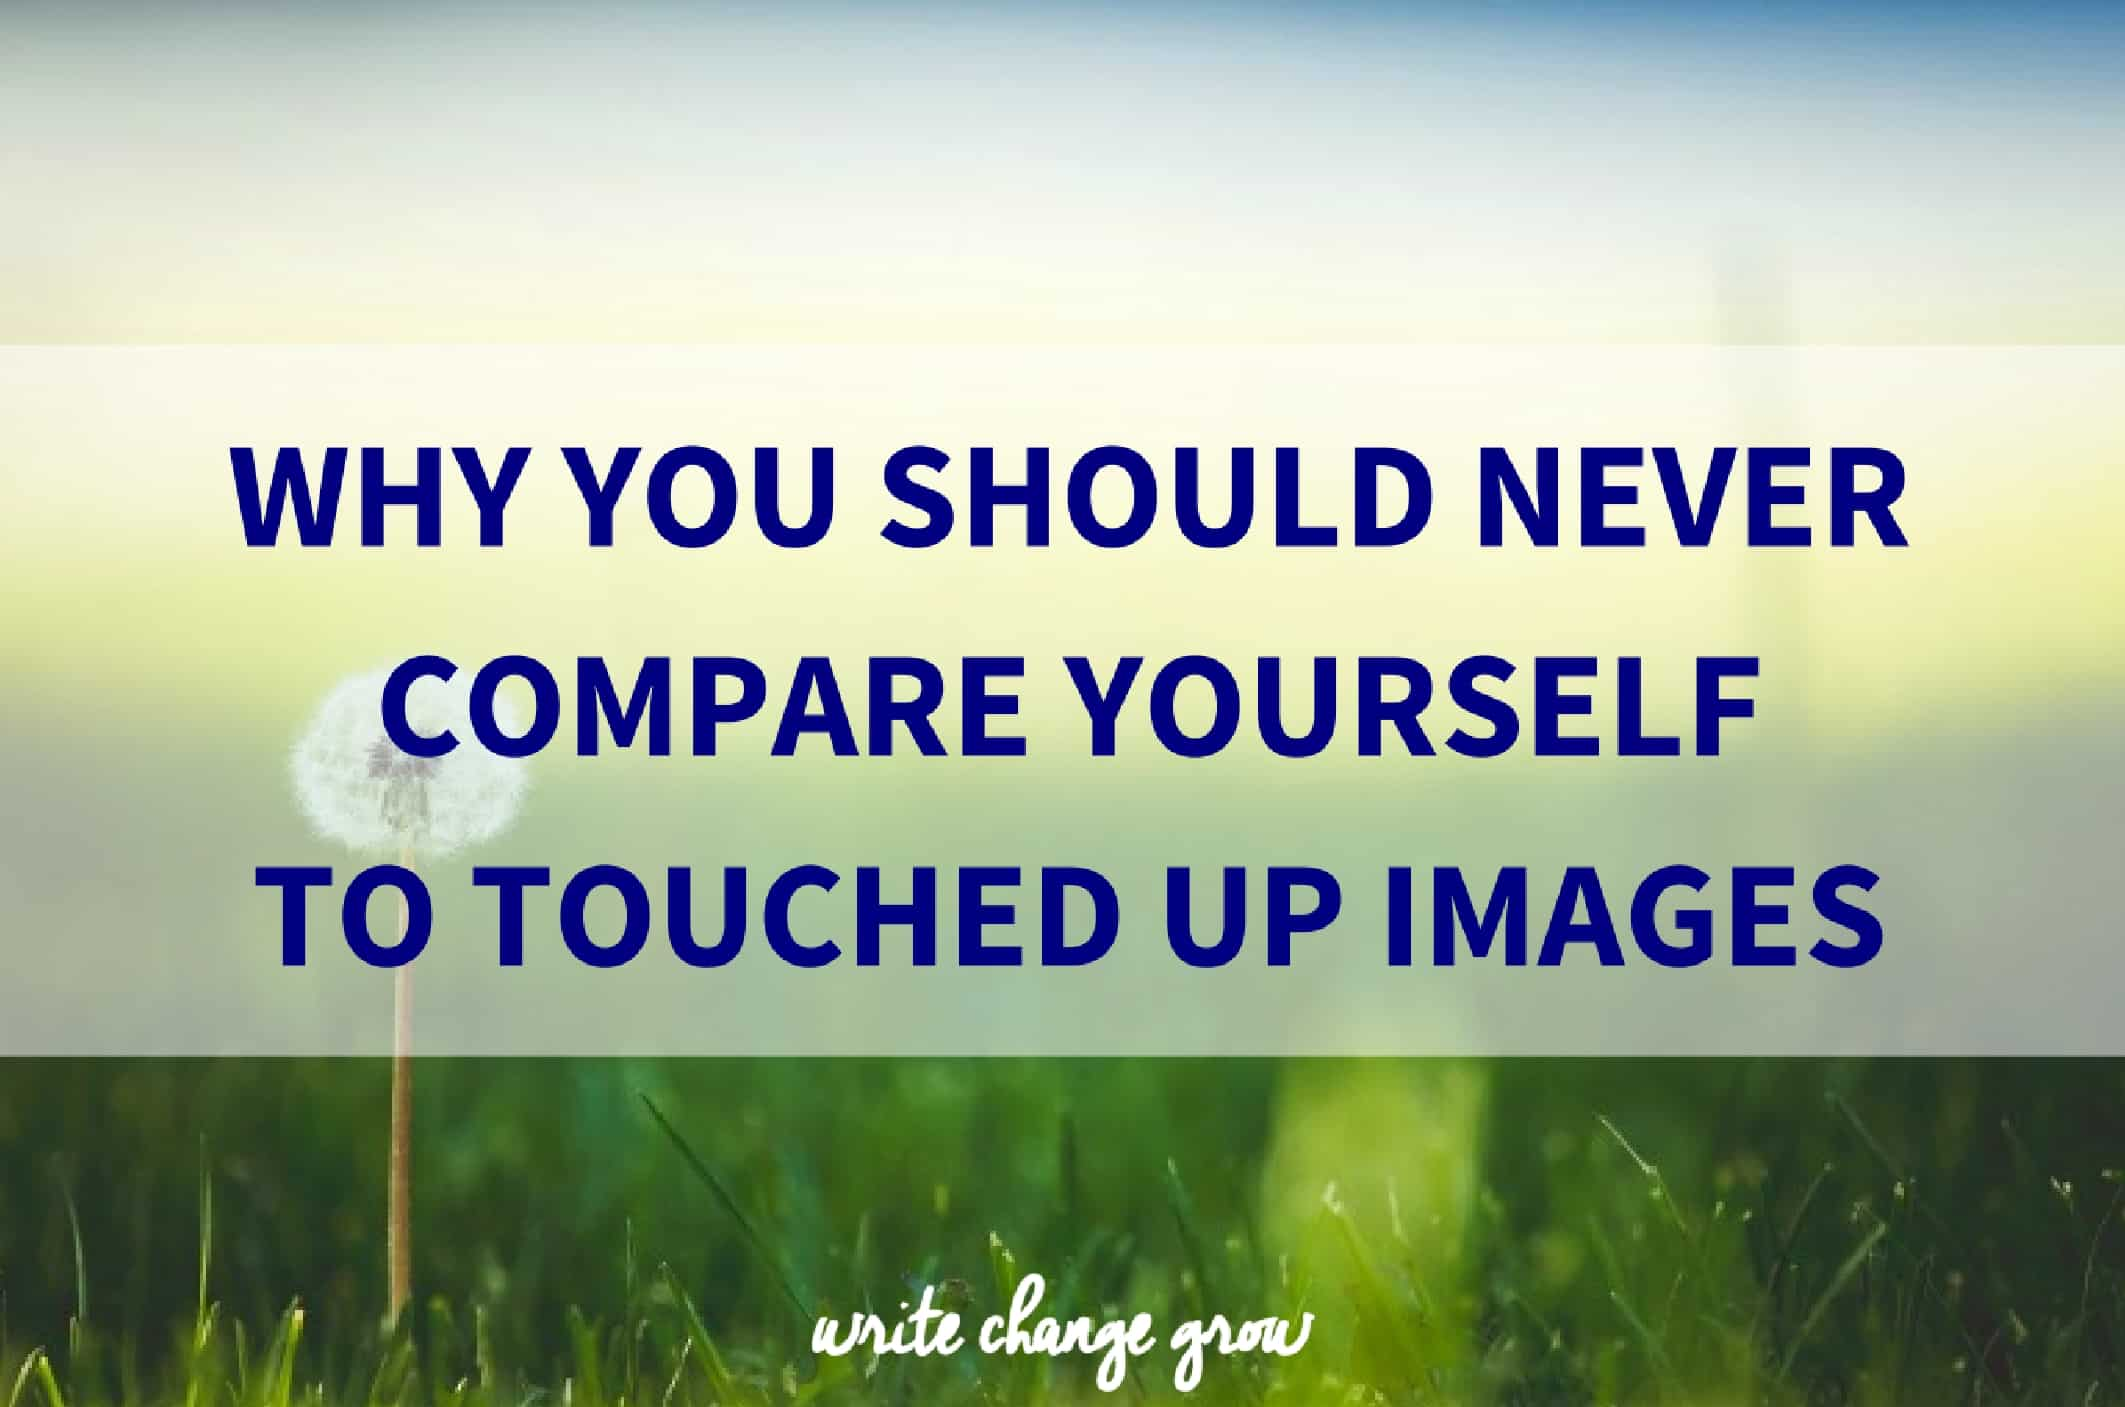 Why You Should Never Compare Yourself to Touched Up Images